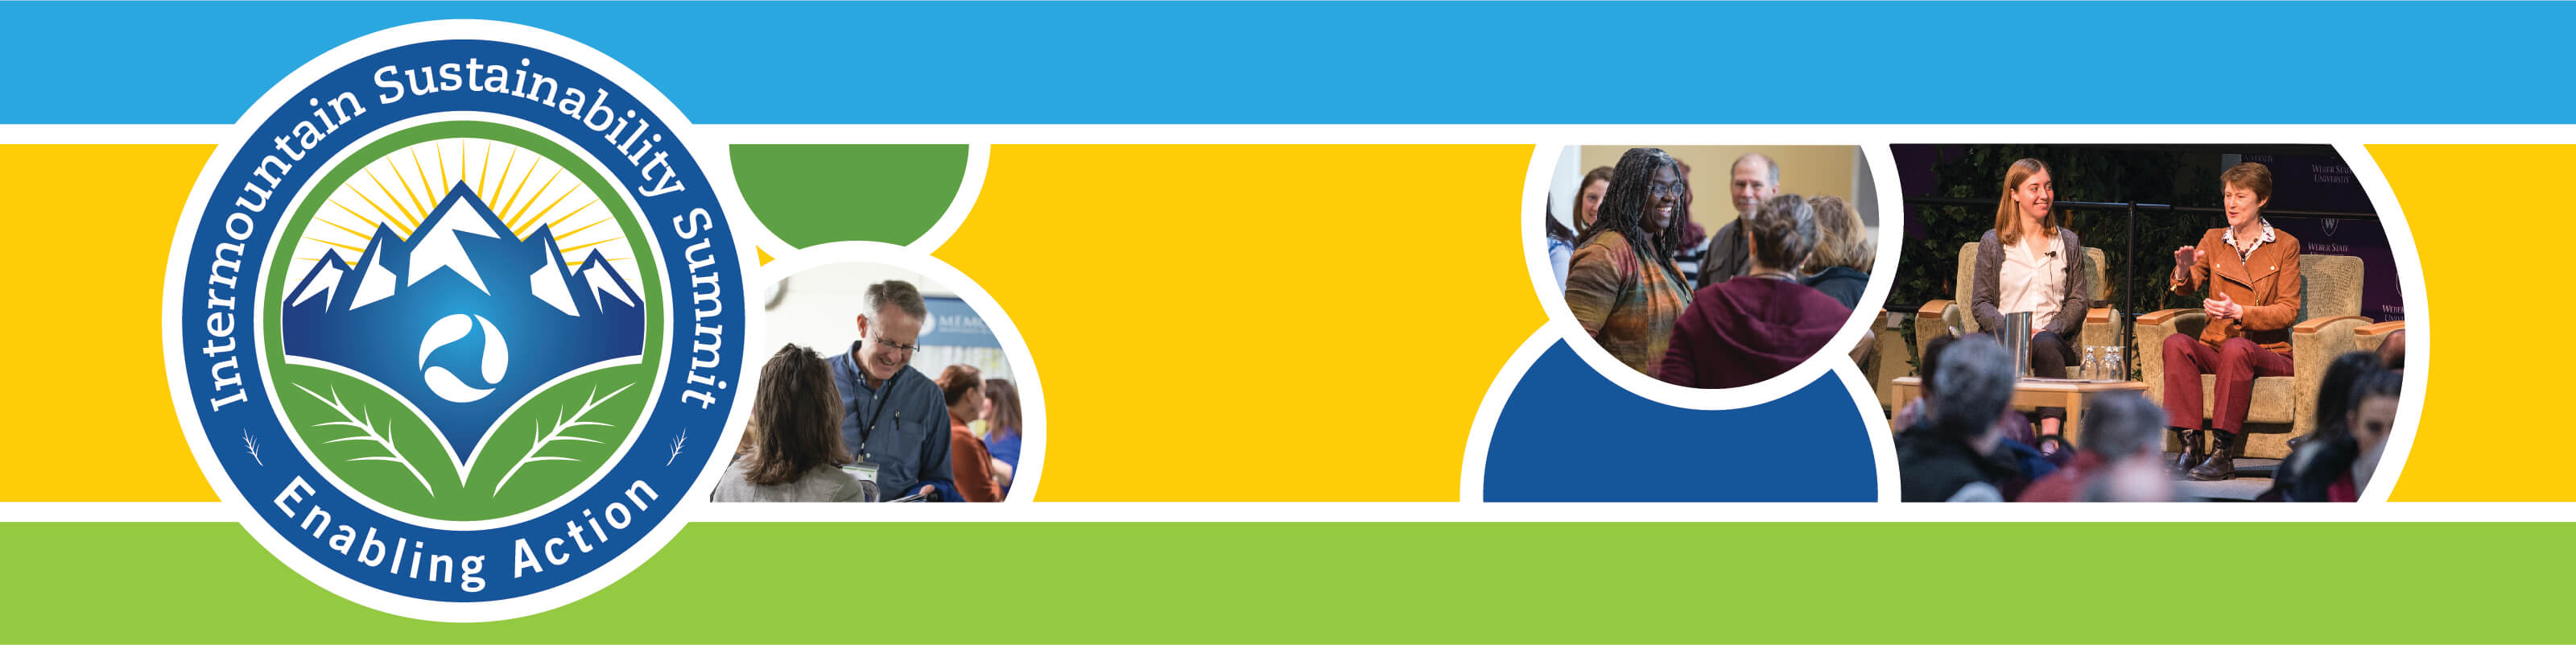 "Intermountain Sustainability Summit logo with slogan ""Enabling Action"" on blue, yellow, and green banner. Banner also features photos of attendees from past summits."